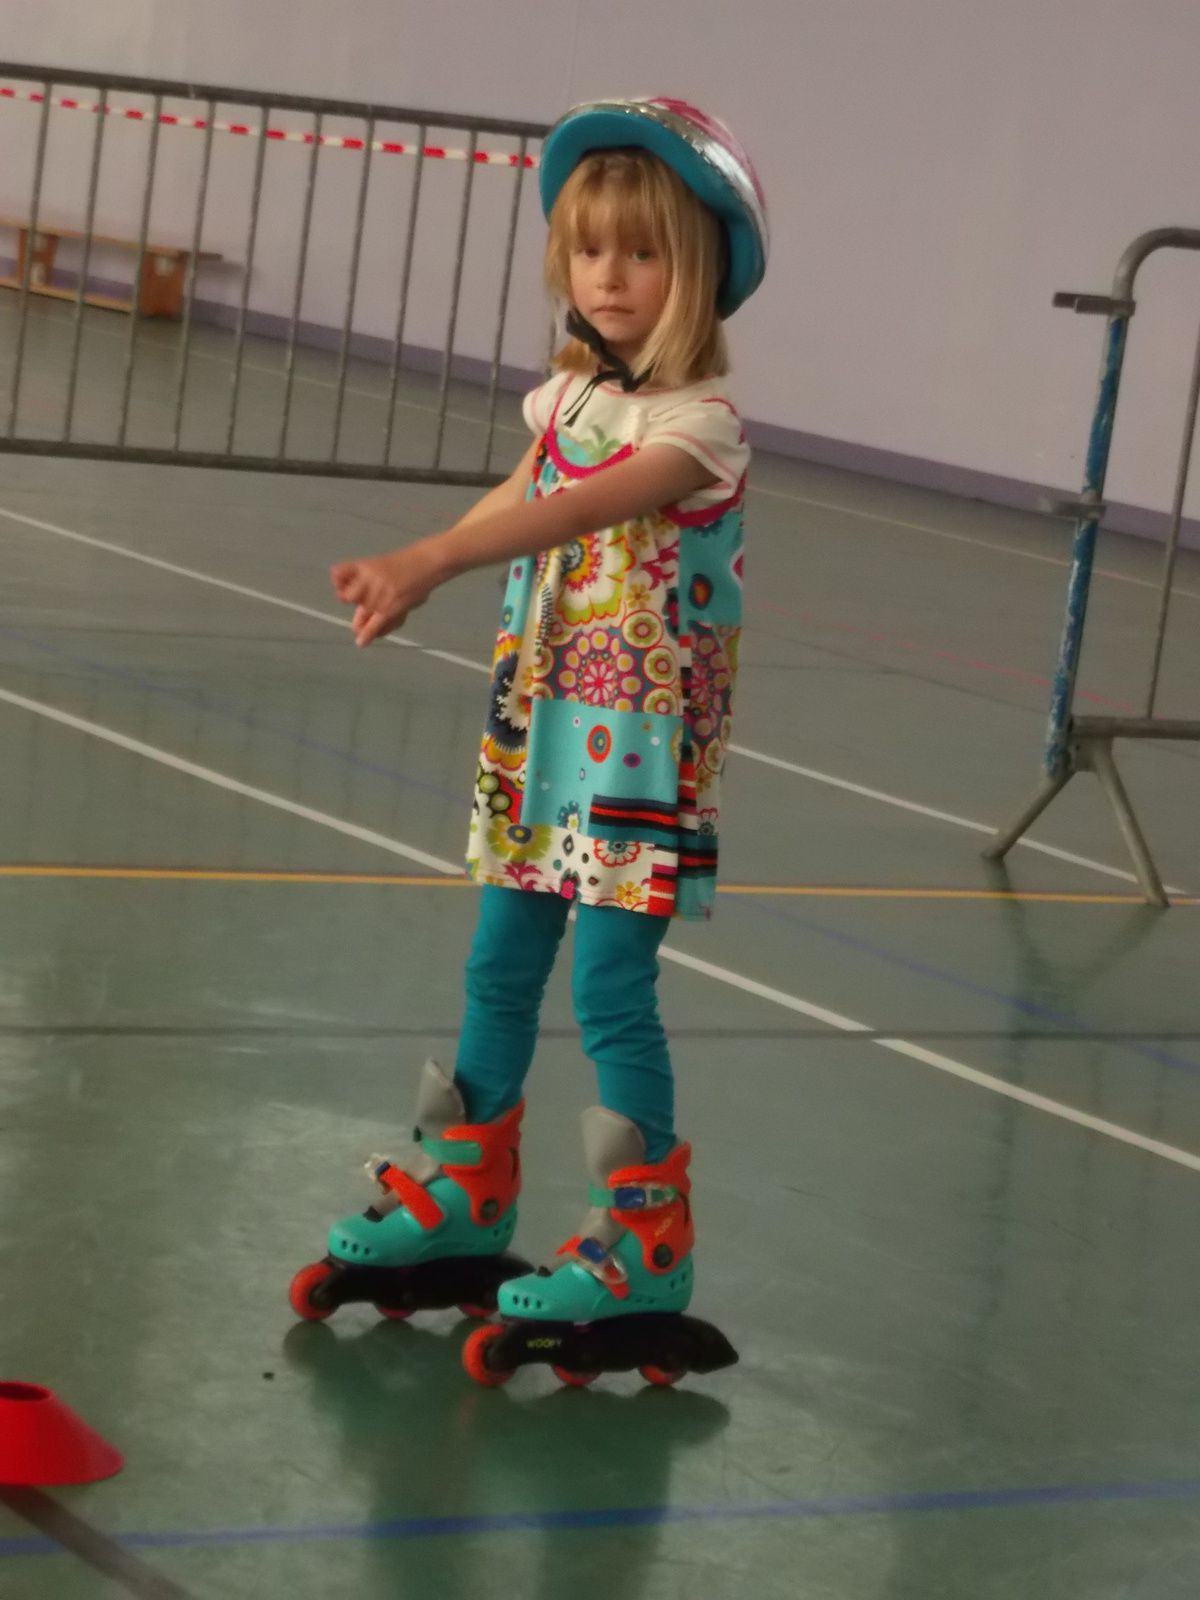 Lily s'essaye aux rollers